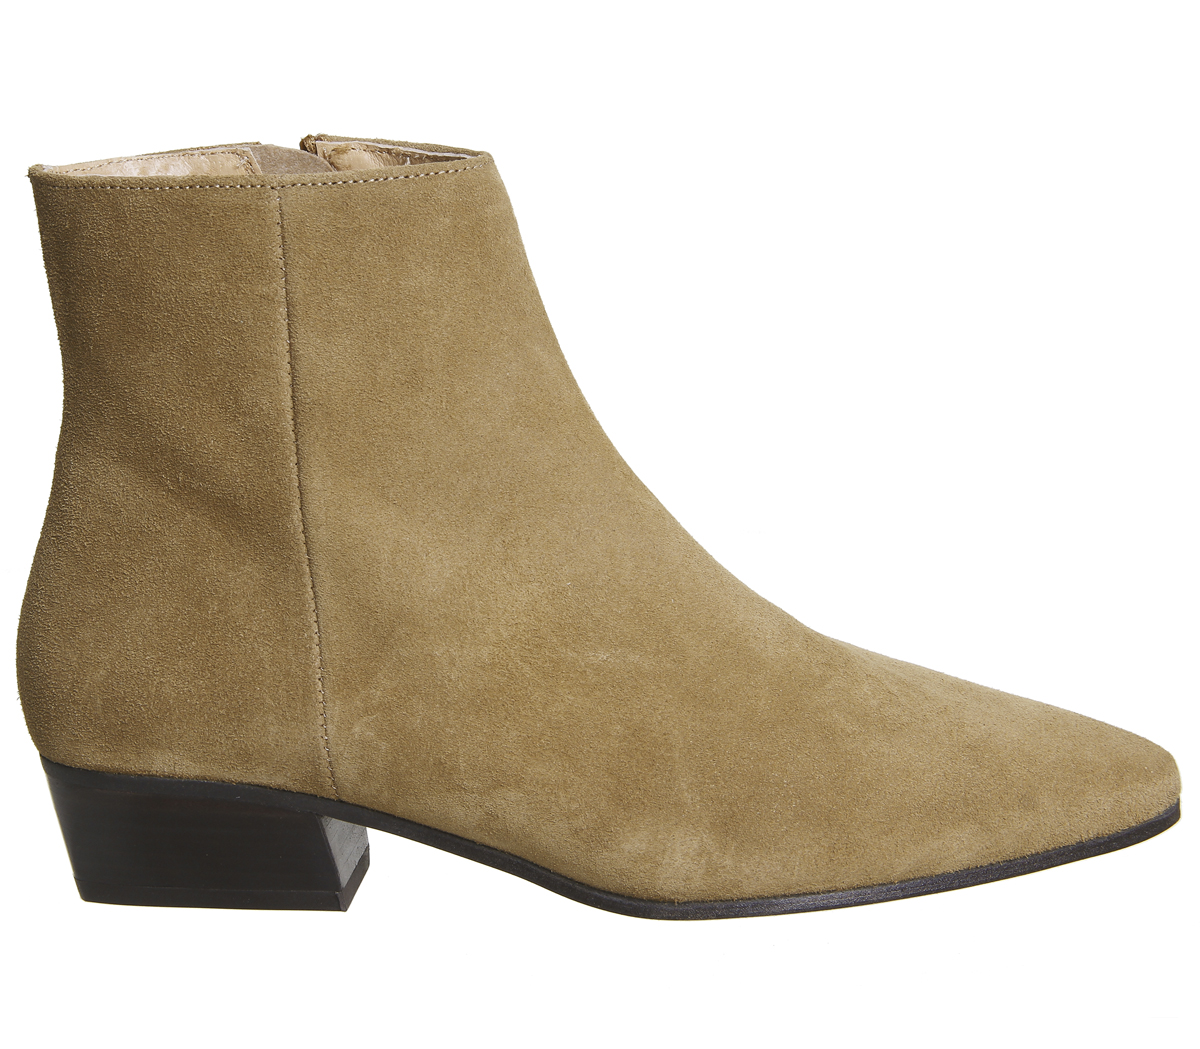 48784c05e234 Sentinel Womens Office Andalucia Casual Low Heel Boots TAN SUEDE Boots